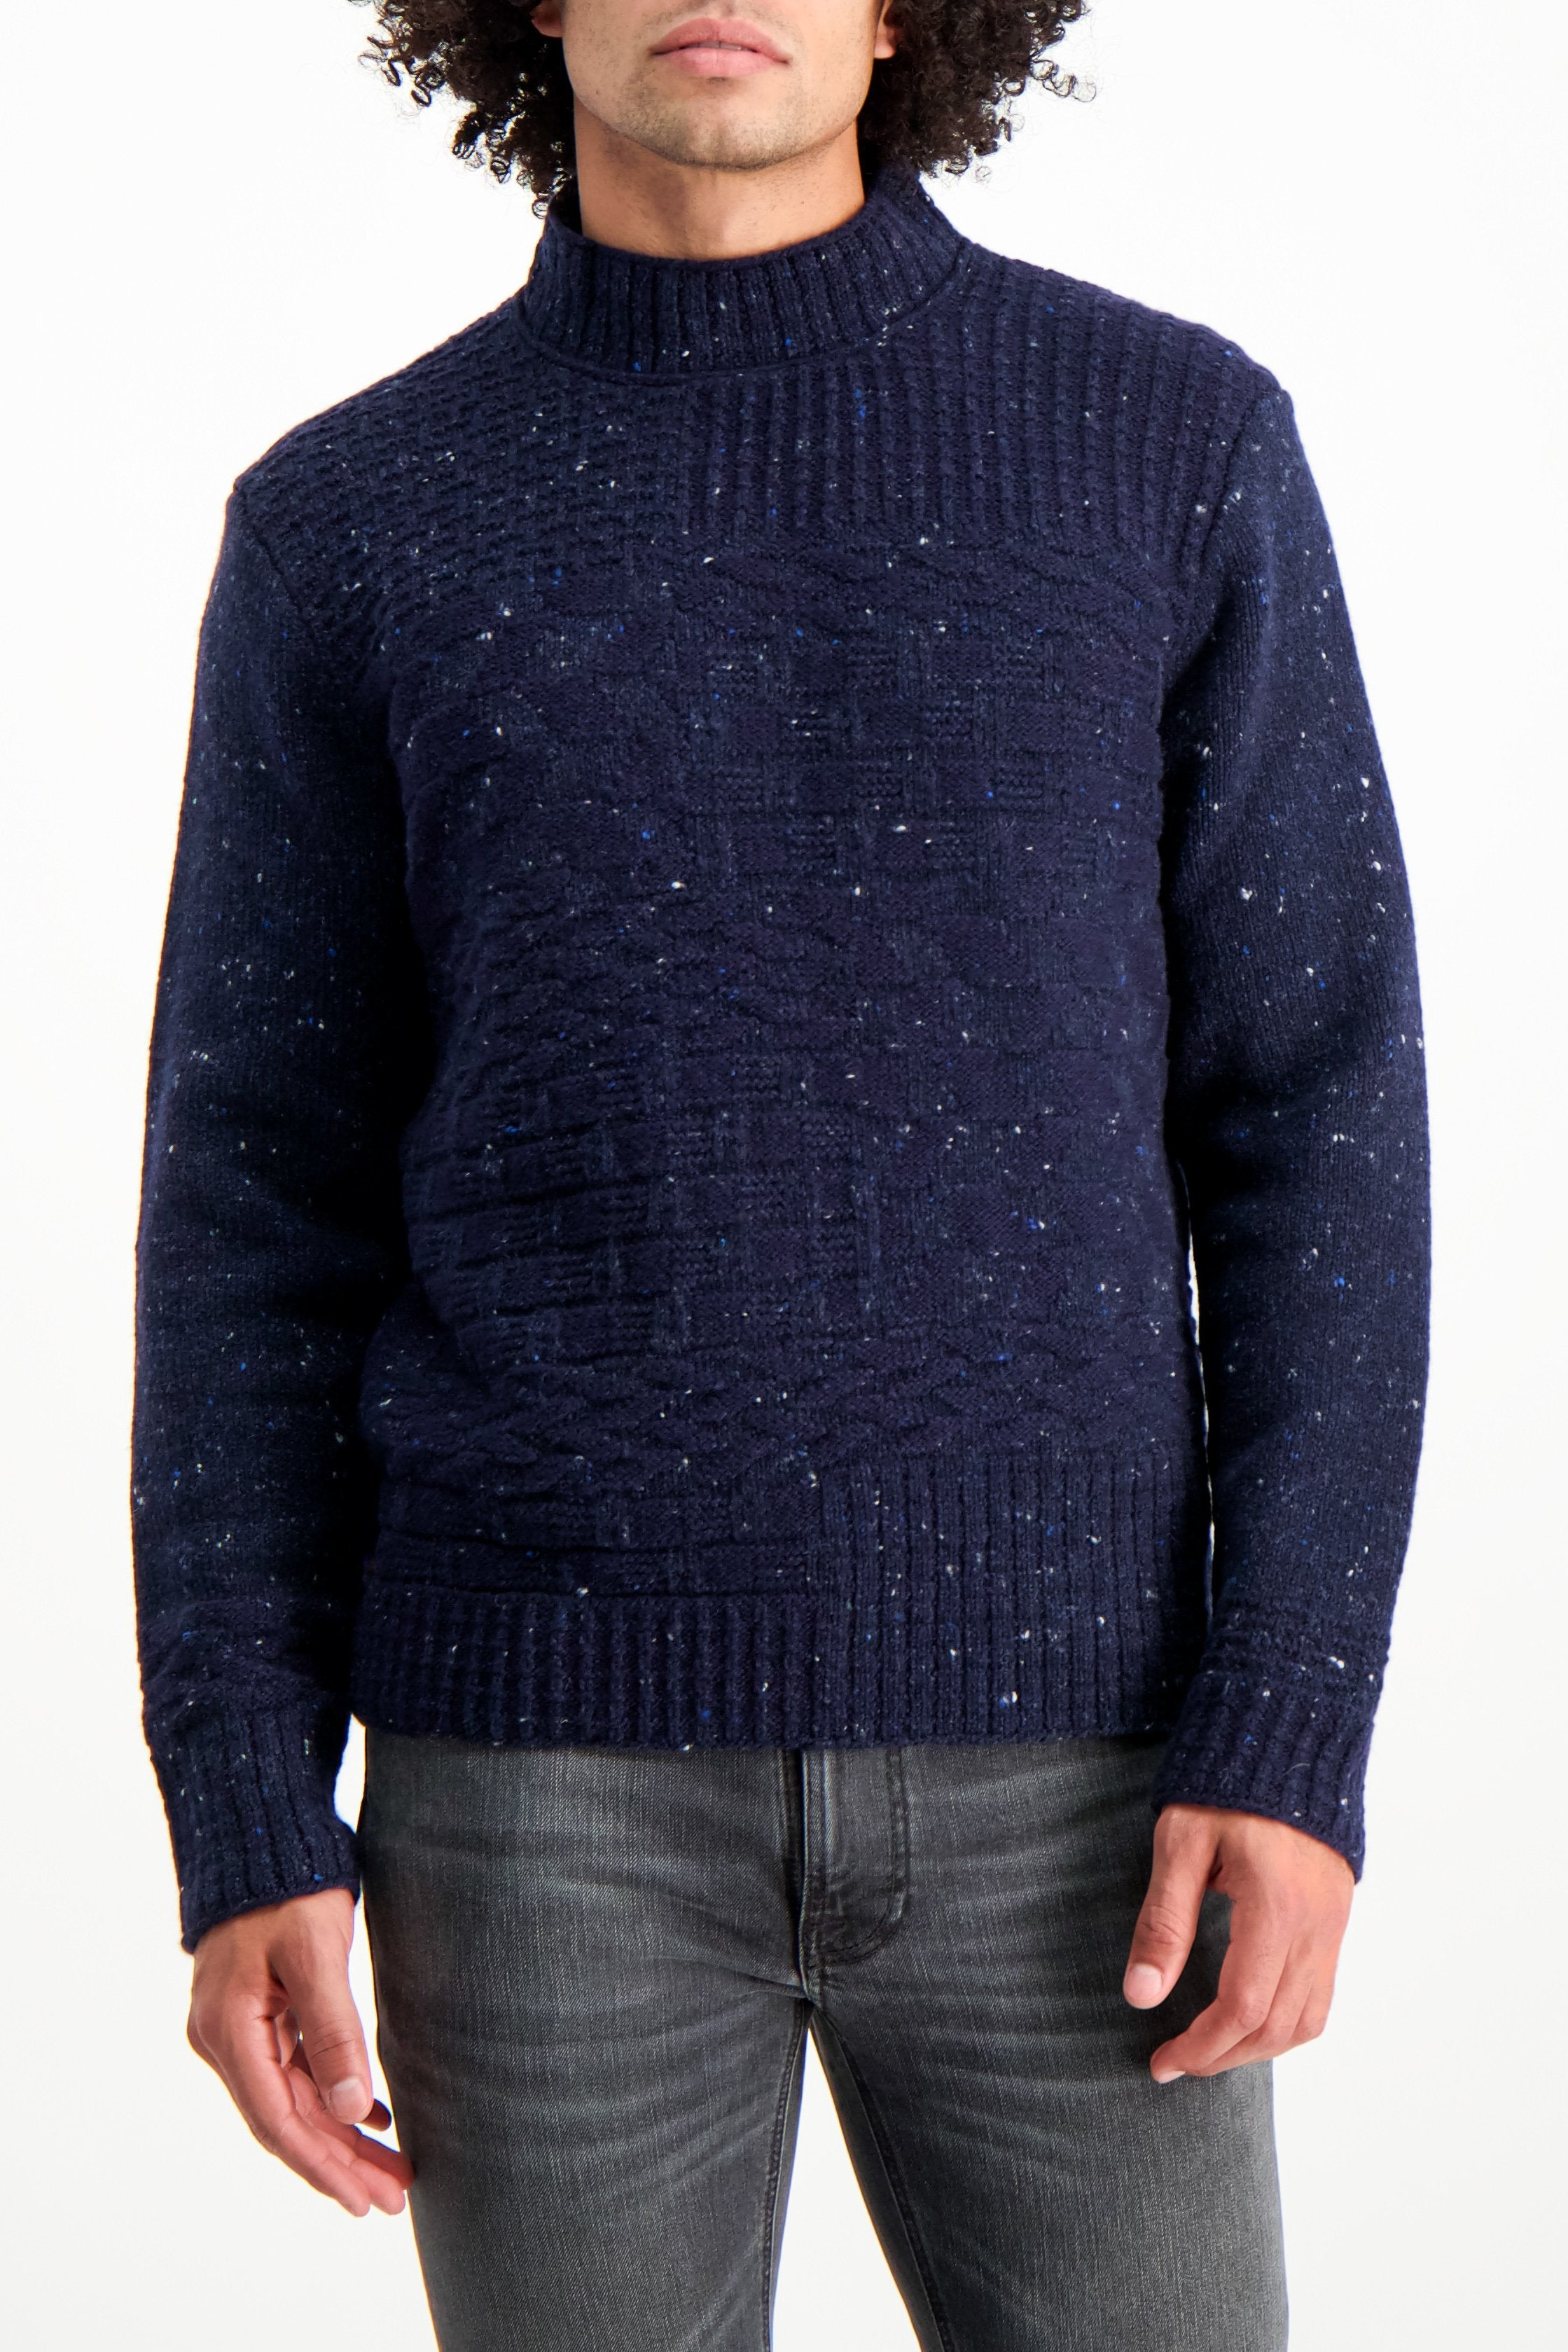 Front Crop Image Of Model Wearing High Crew Neck Sweater Navy